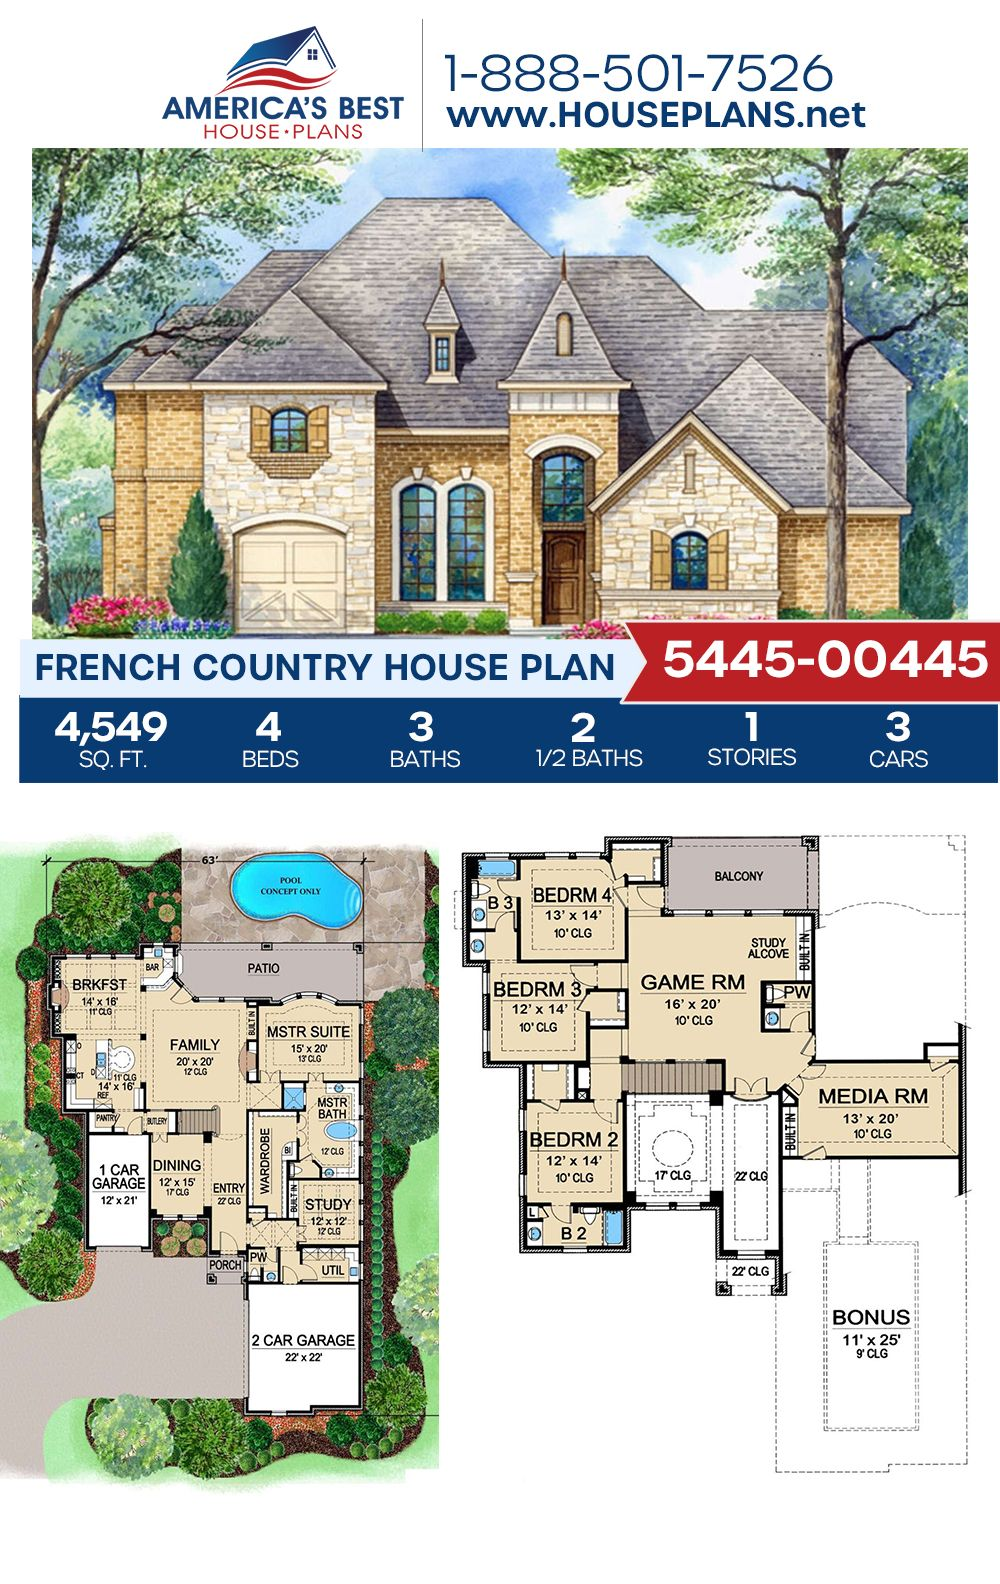 House Plan 5445 00445 French Country Plan 4 549 Square Feet 4 Bedrooms 4 Bathrooms French Country House Plans French Country House Country House Plan